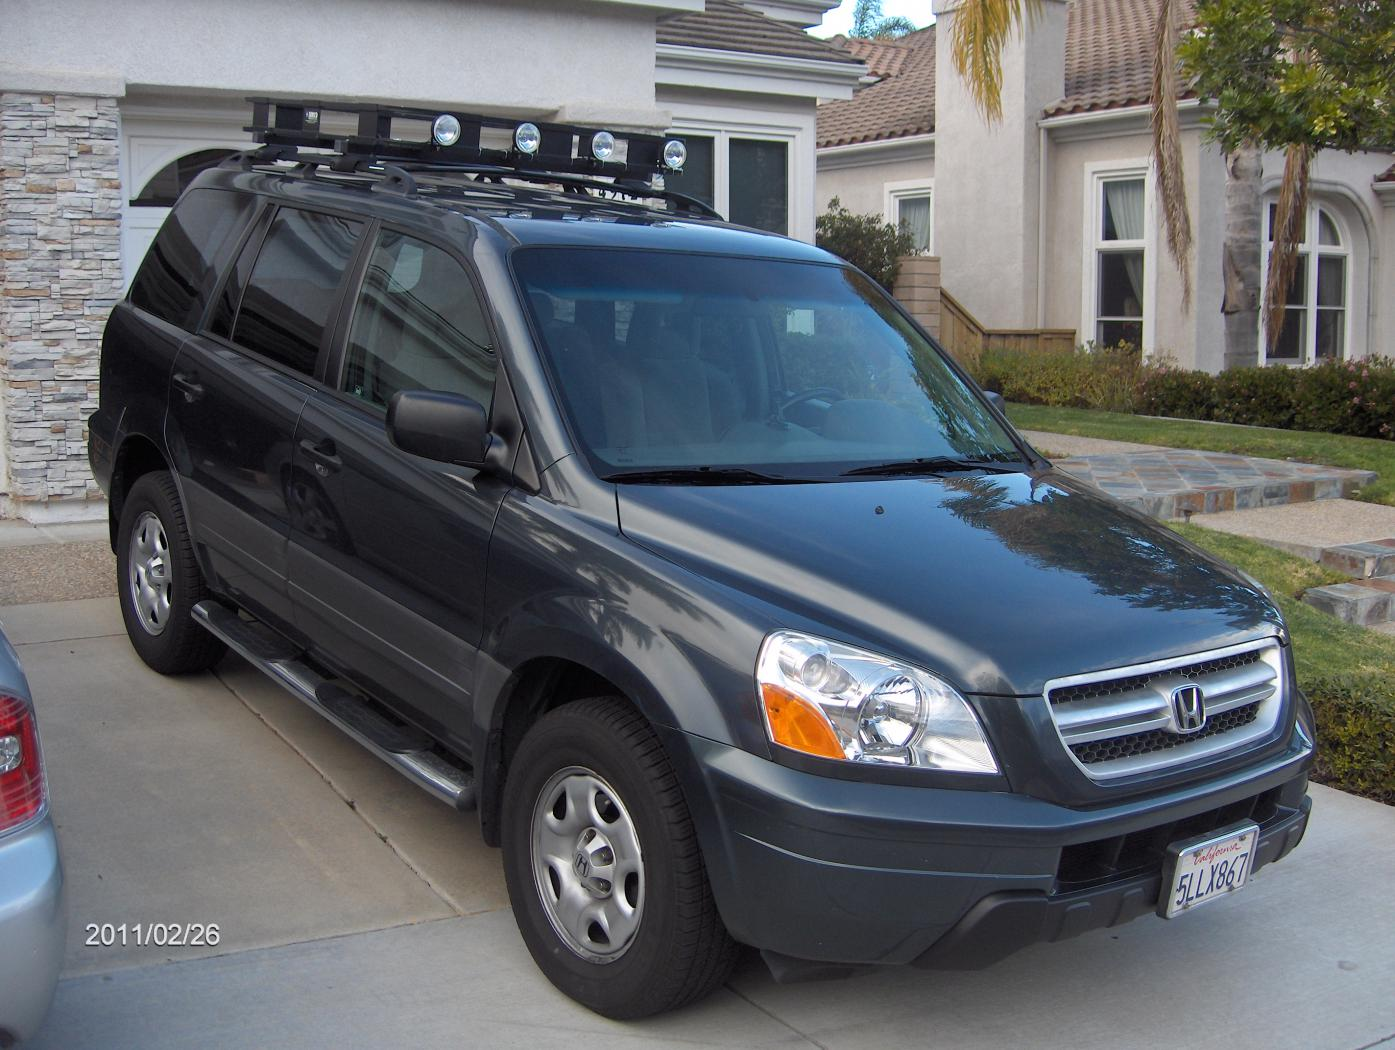 Click image for larger versionName:Roof rack.jpgViews:12438Size:194.9 KBID:36743